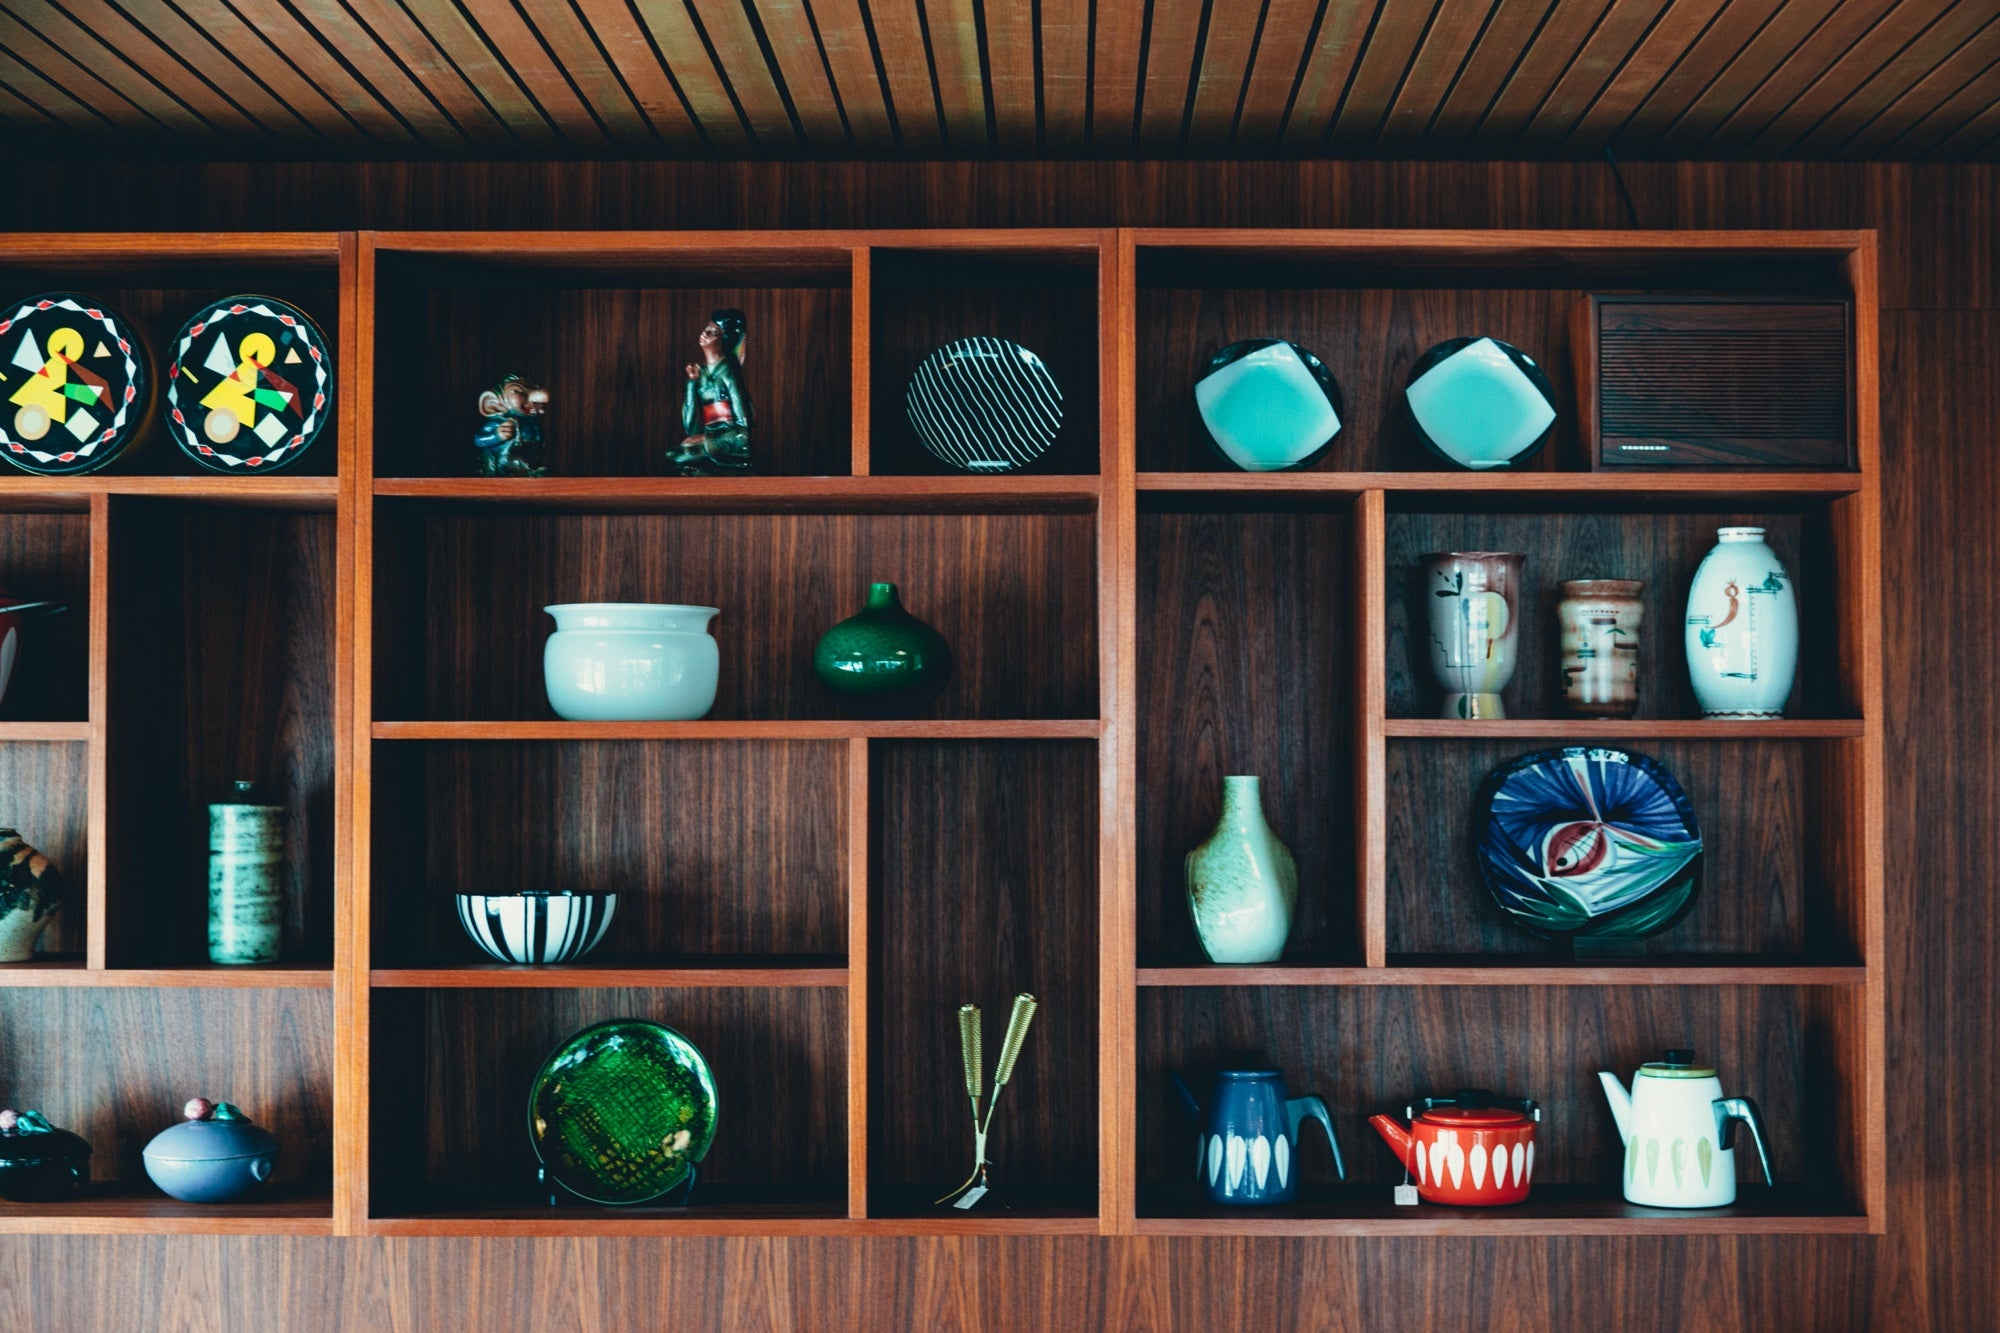 Wall shelf covered in ceramic vases and decorative objects